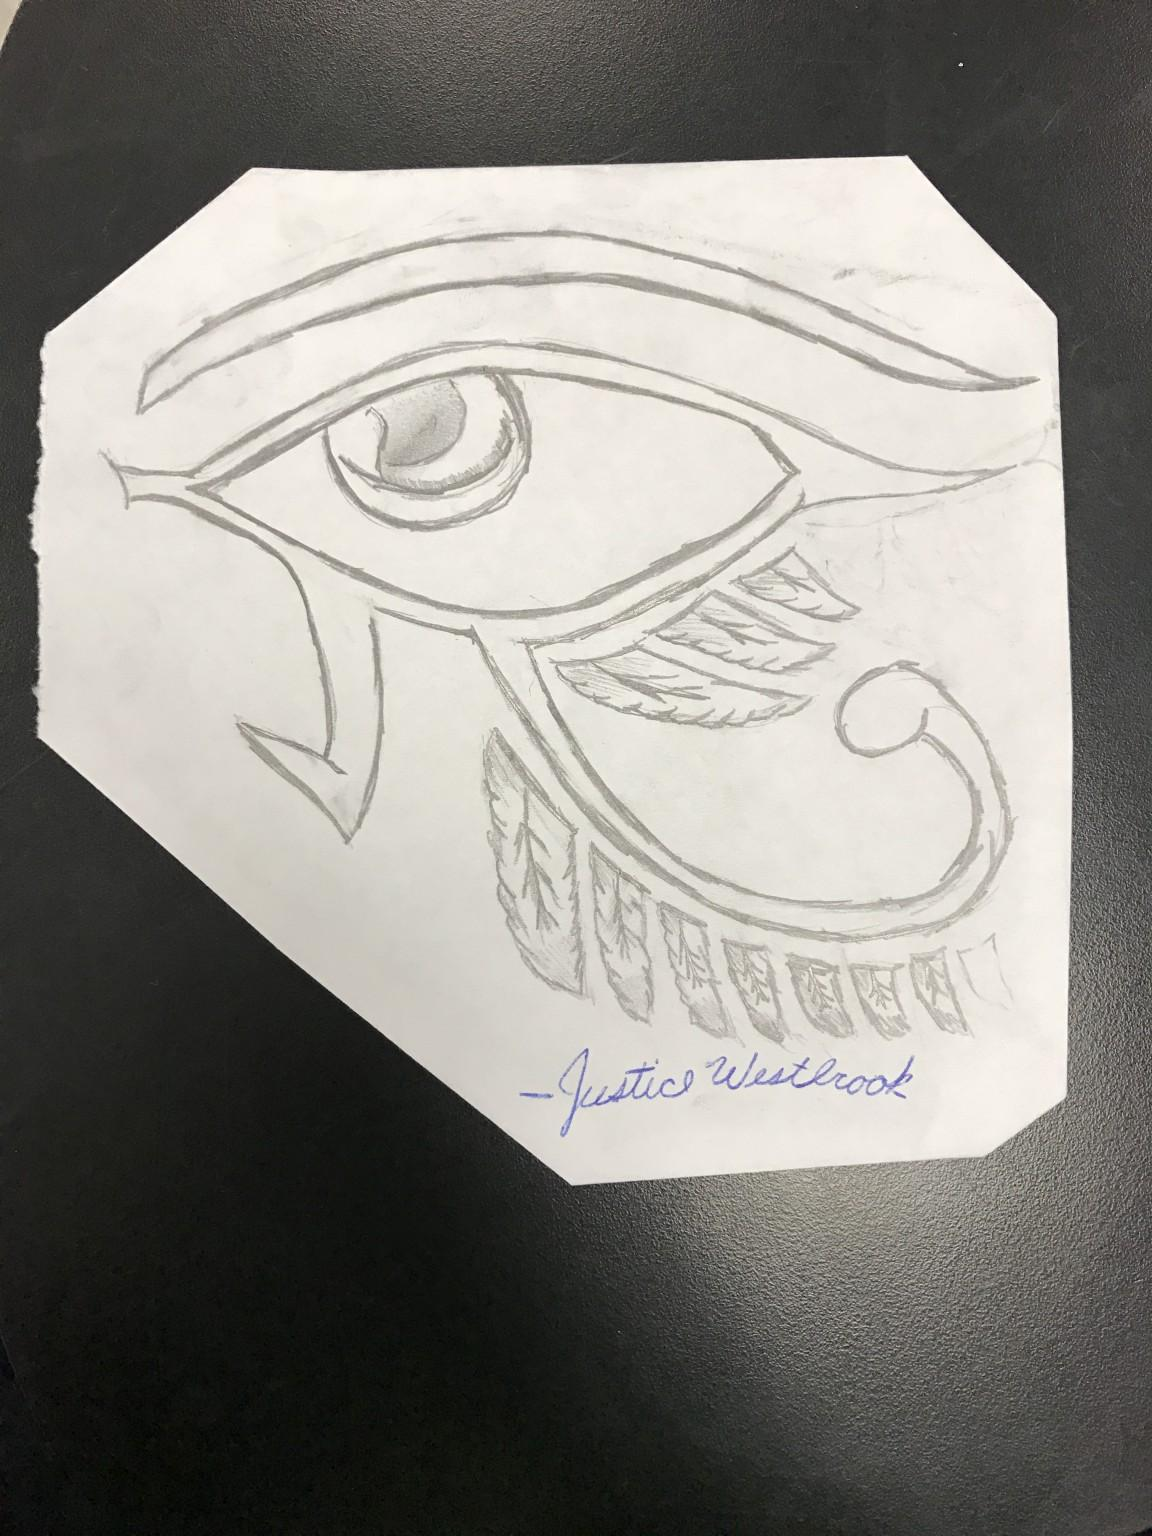 A drawing by Justice Westbrook.¨Eye of Horus.¨